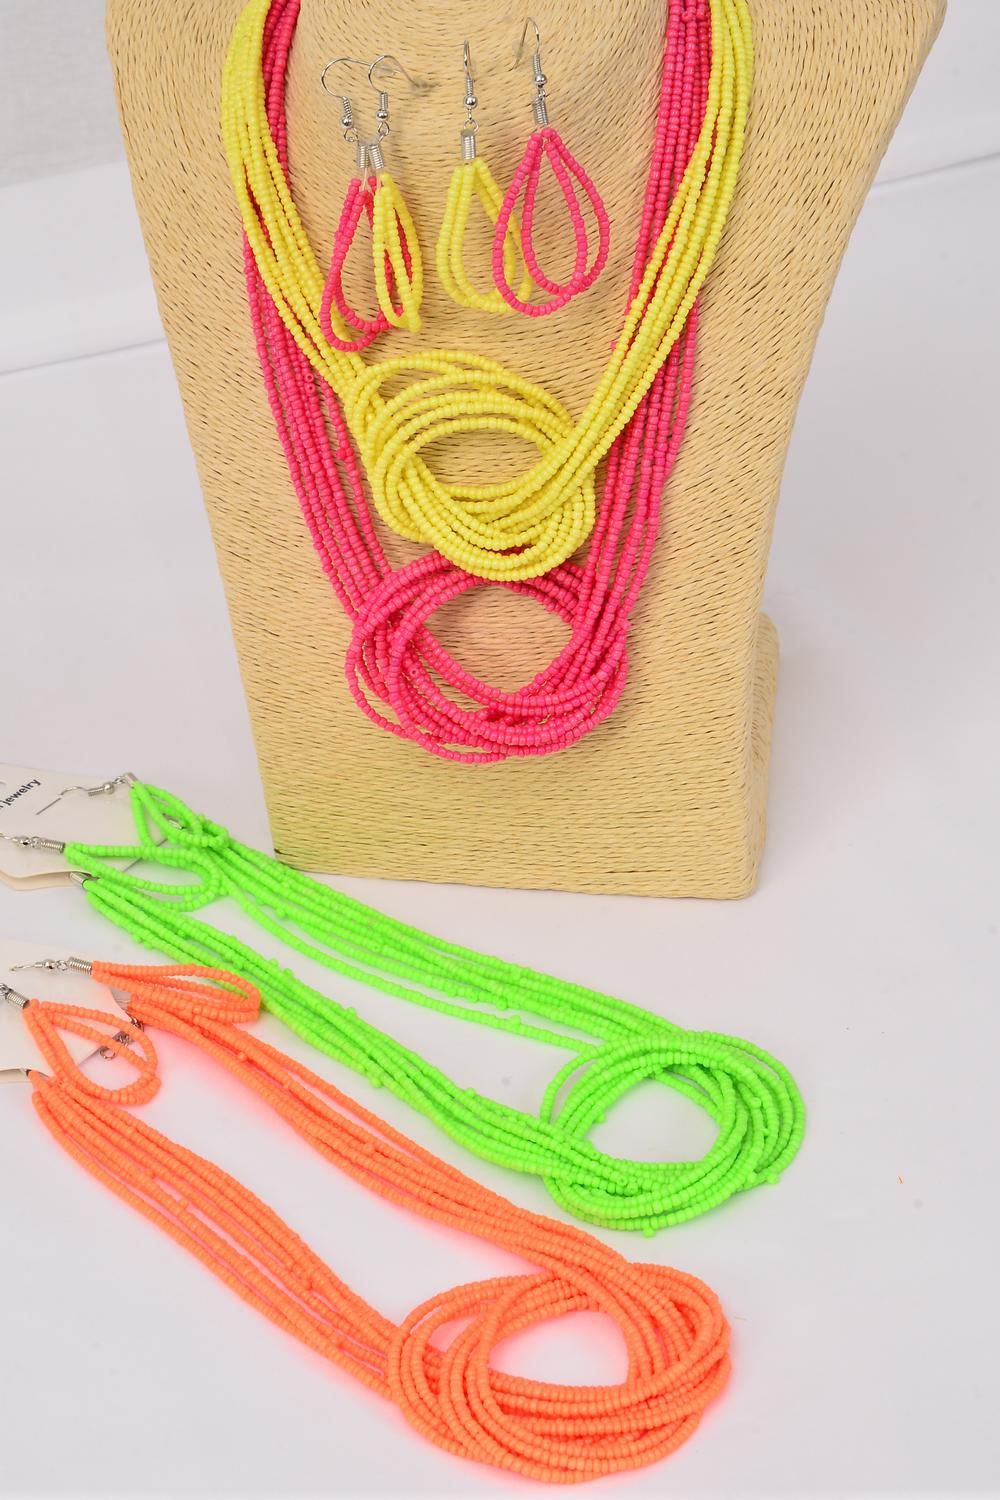 "Necklace Bunch Indian Beads W Knot Neon/DZ Size-18"" long,3 of each Color Asst,Hang Tag & OPP Bag & UPC Code -"